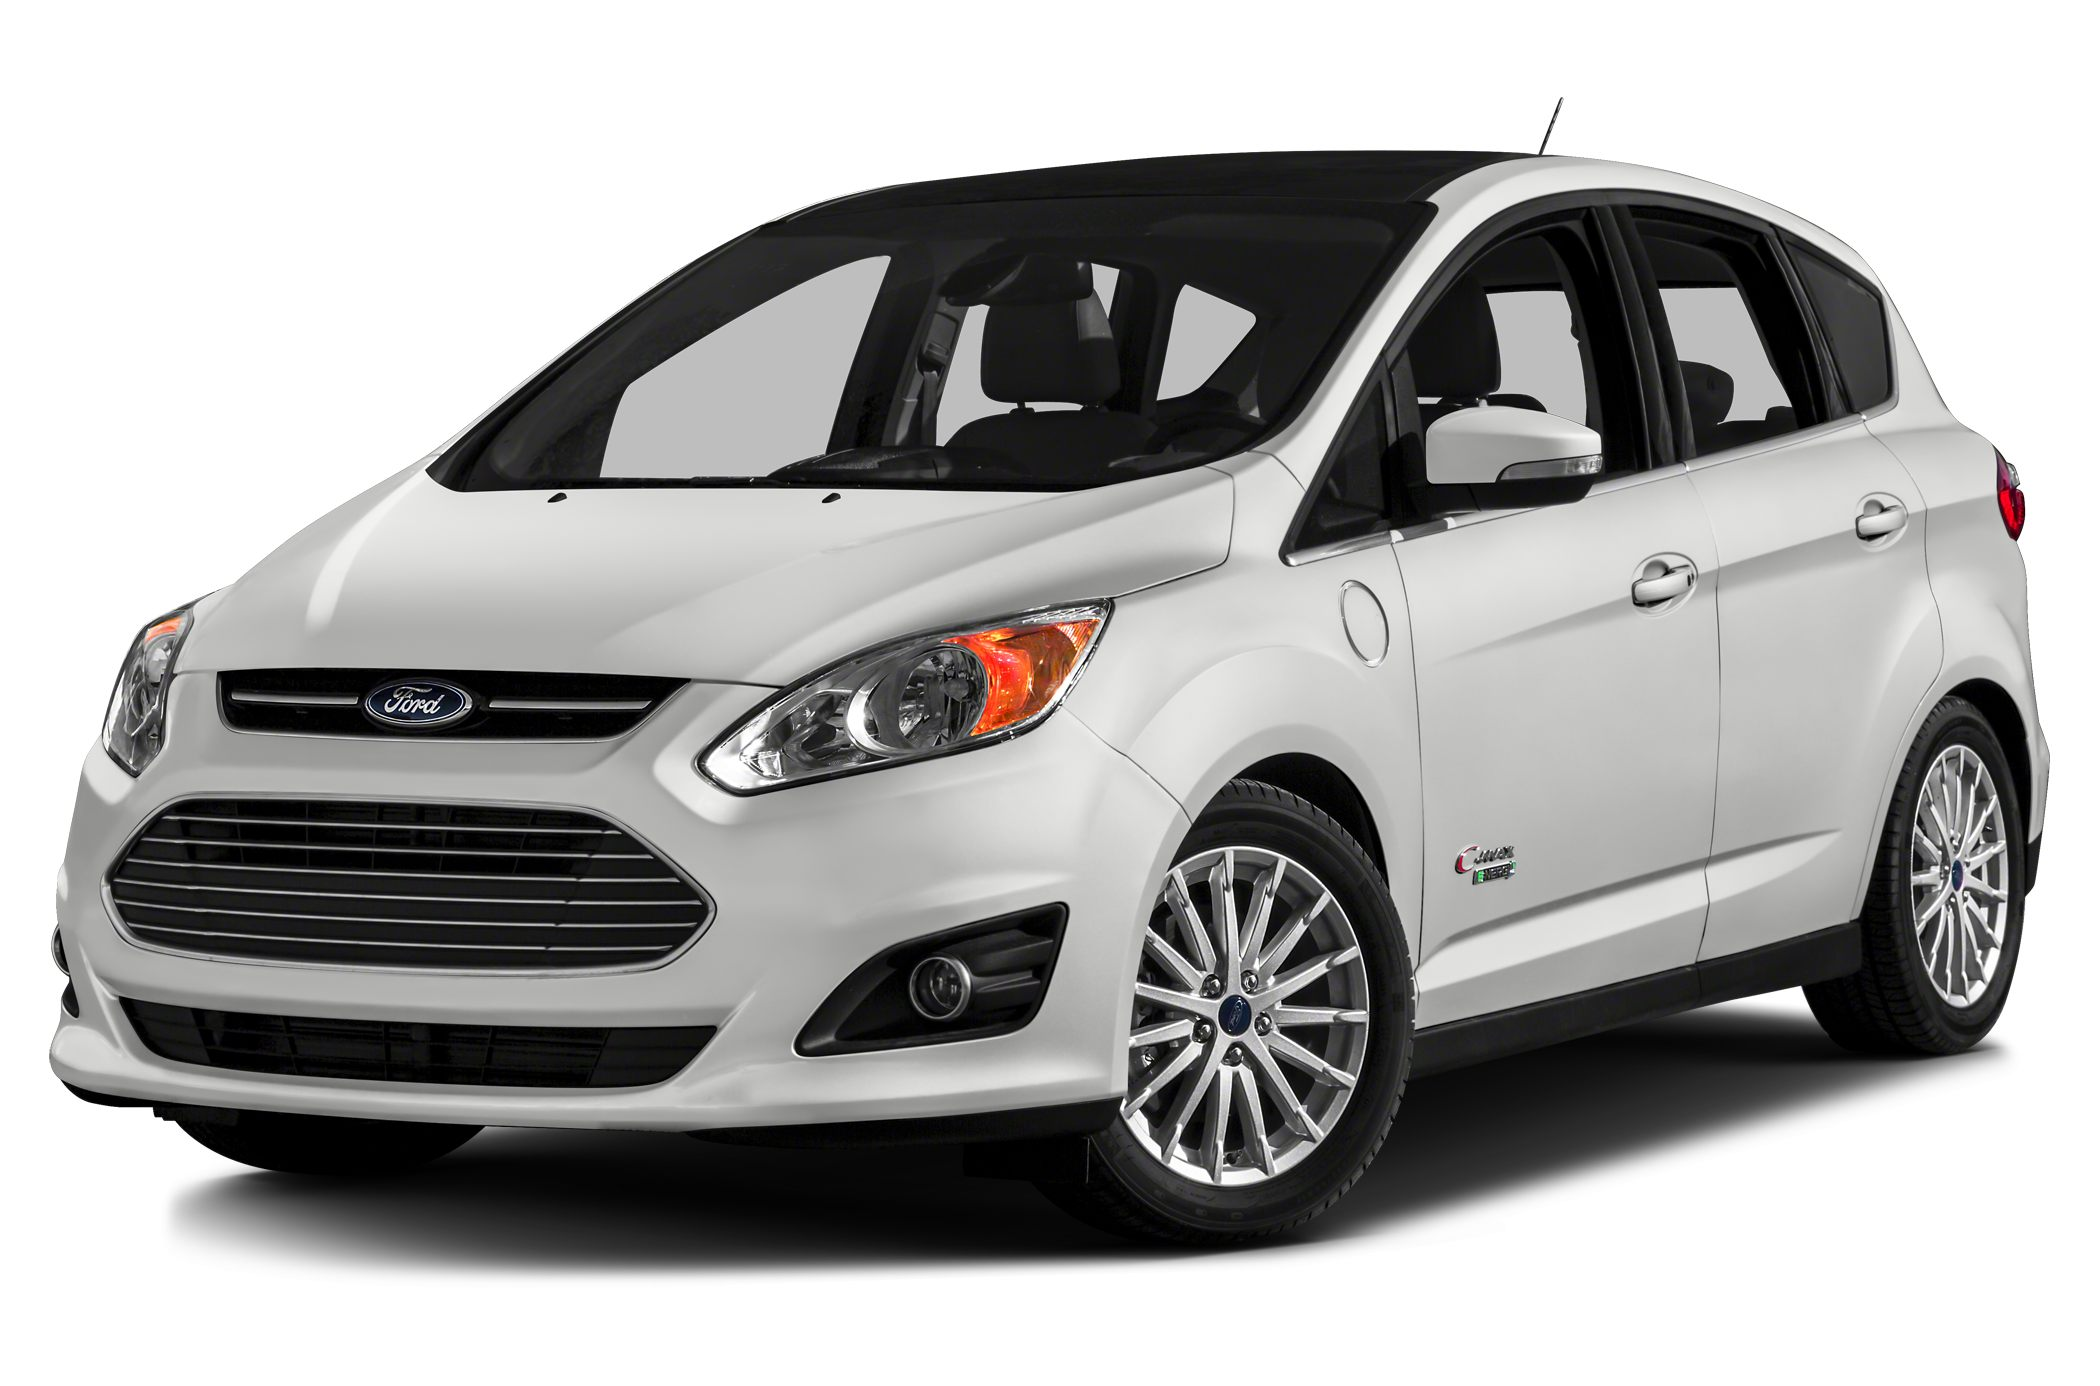 2015 Ford C-Max Energi SEL Hatchback for sale in Gainesville for $34,790 with 16 miles